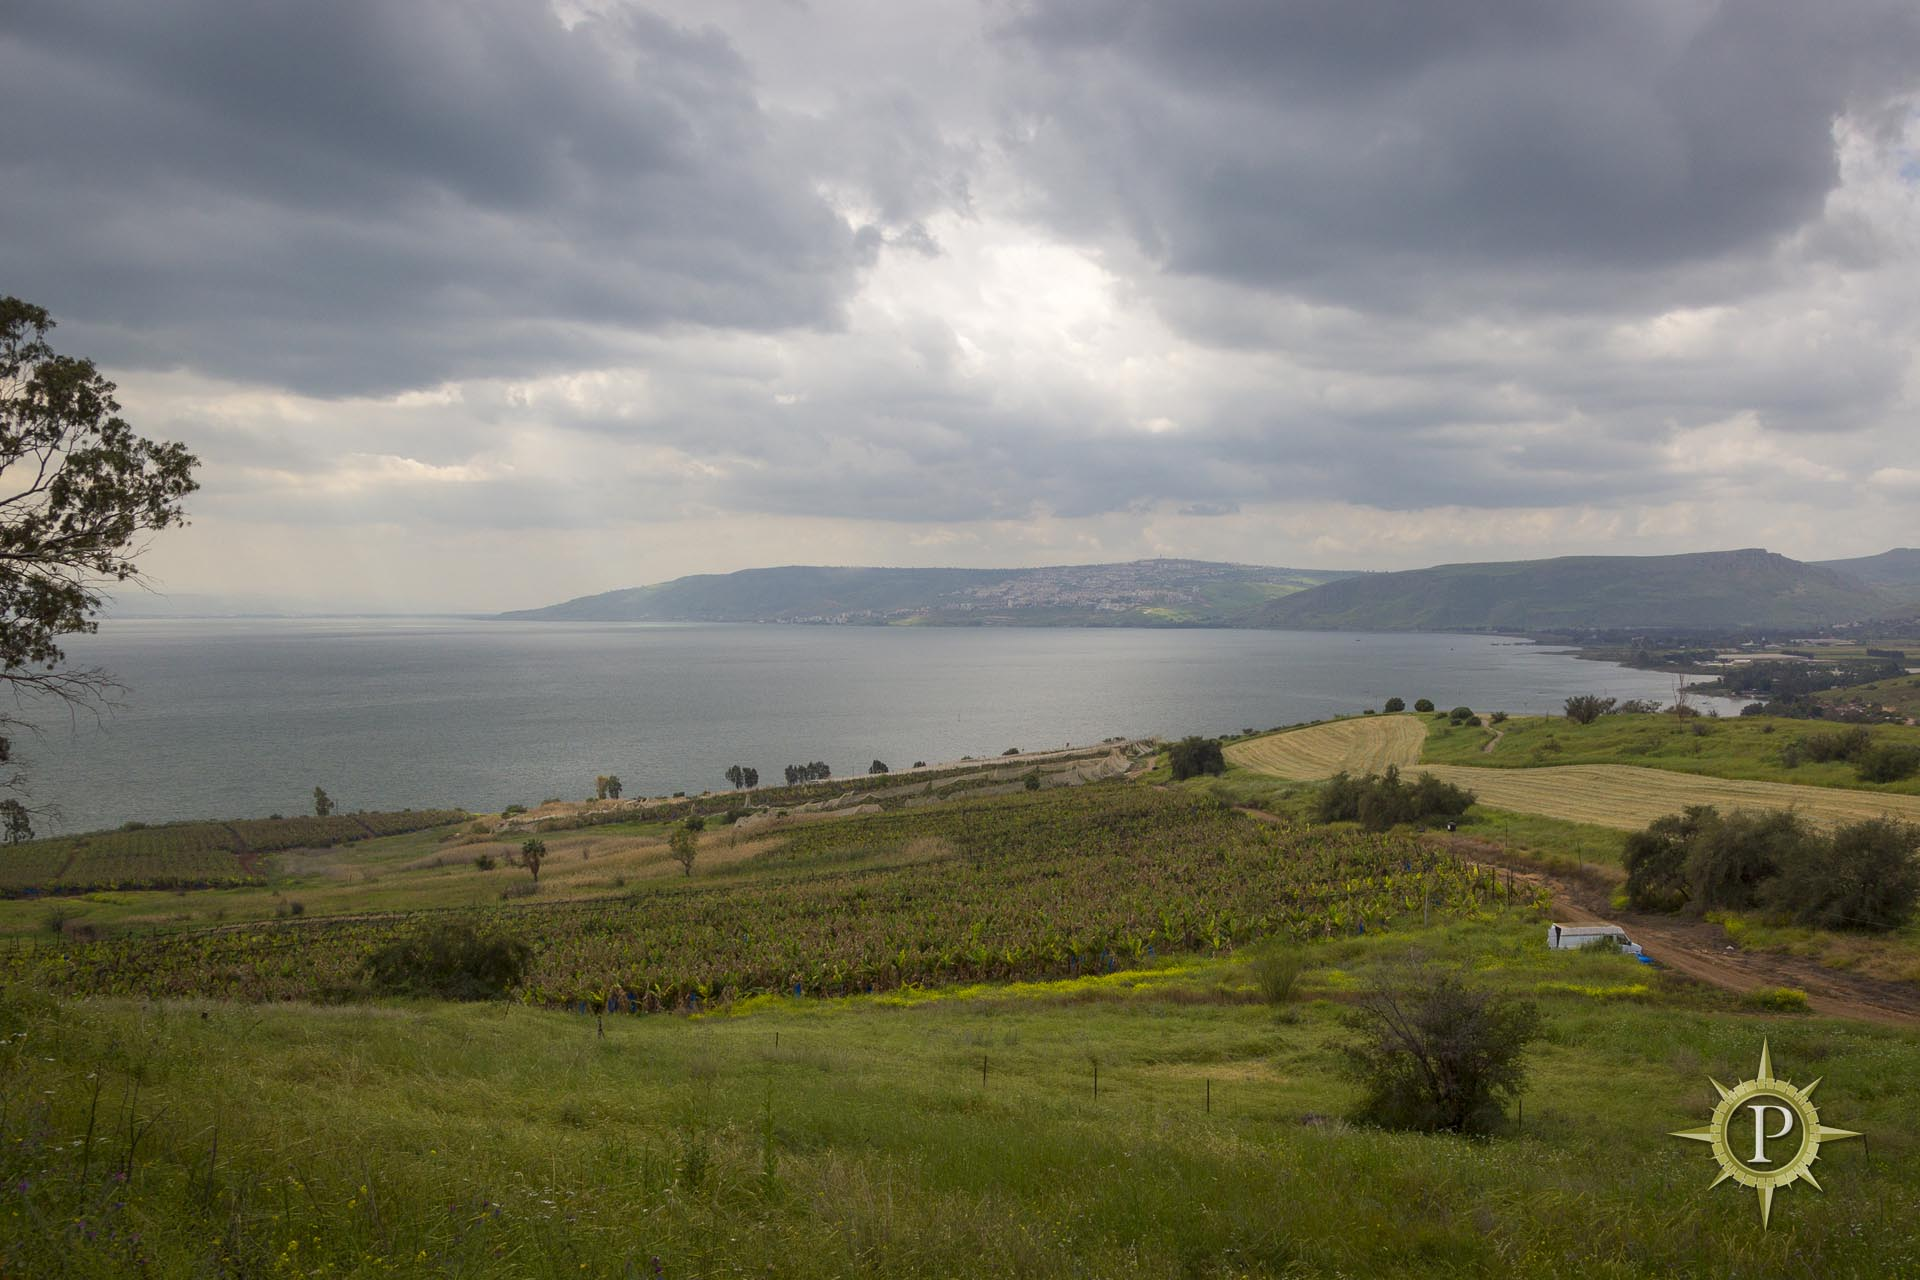 Sea of Galilee - Cove of the Sower